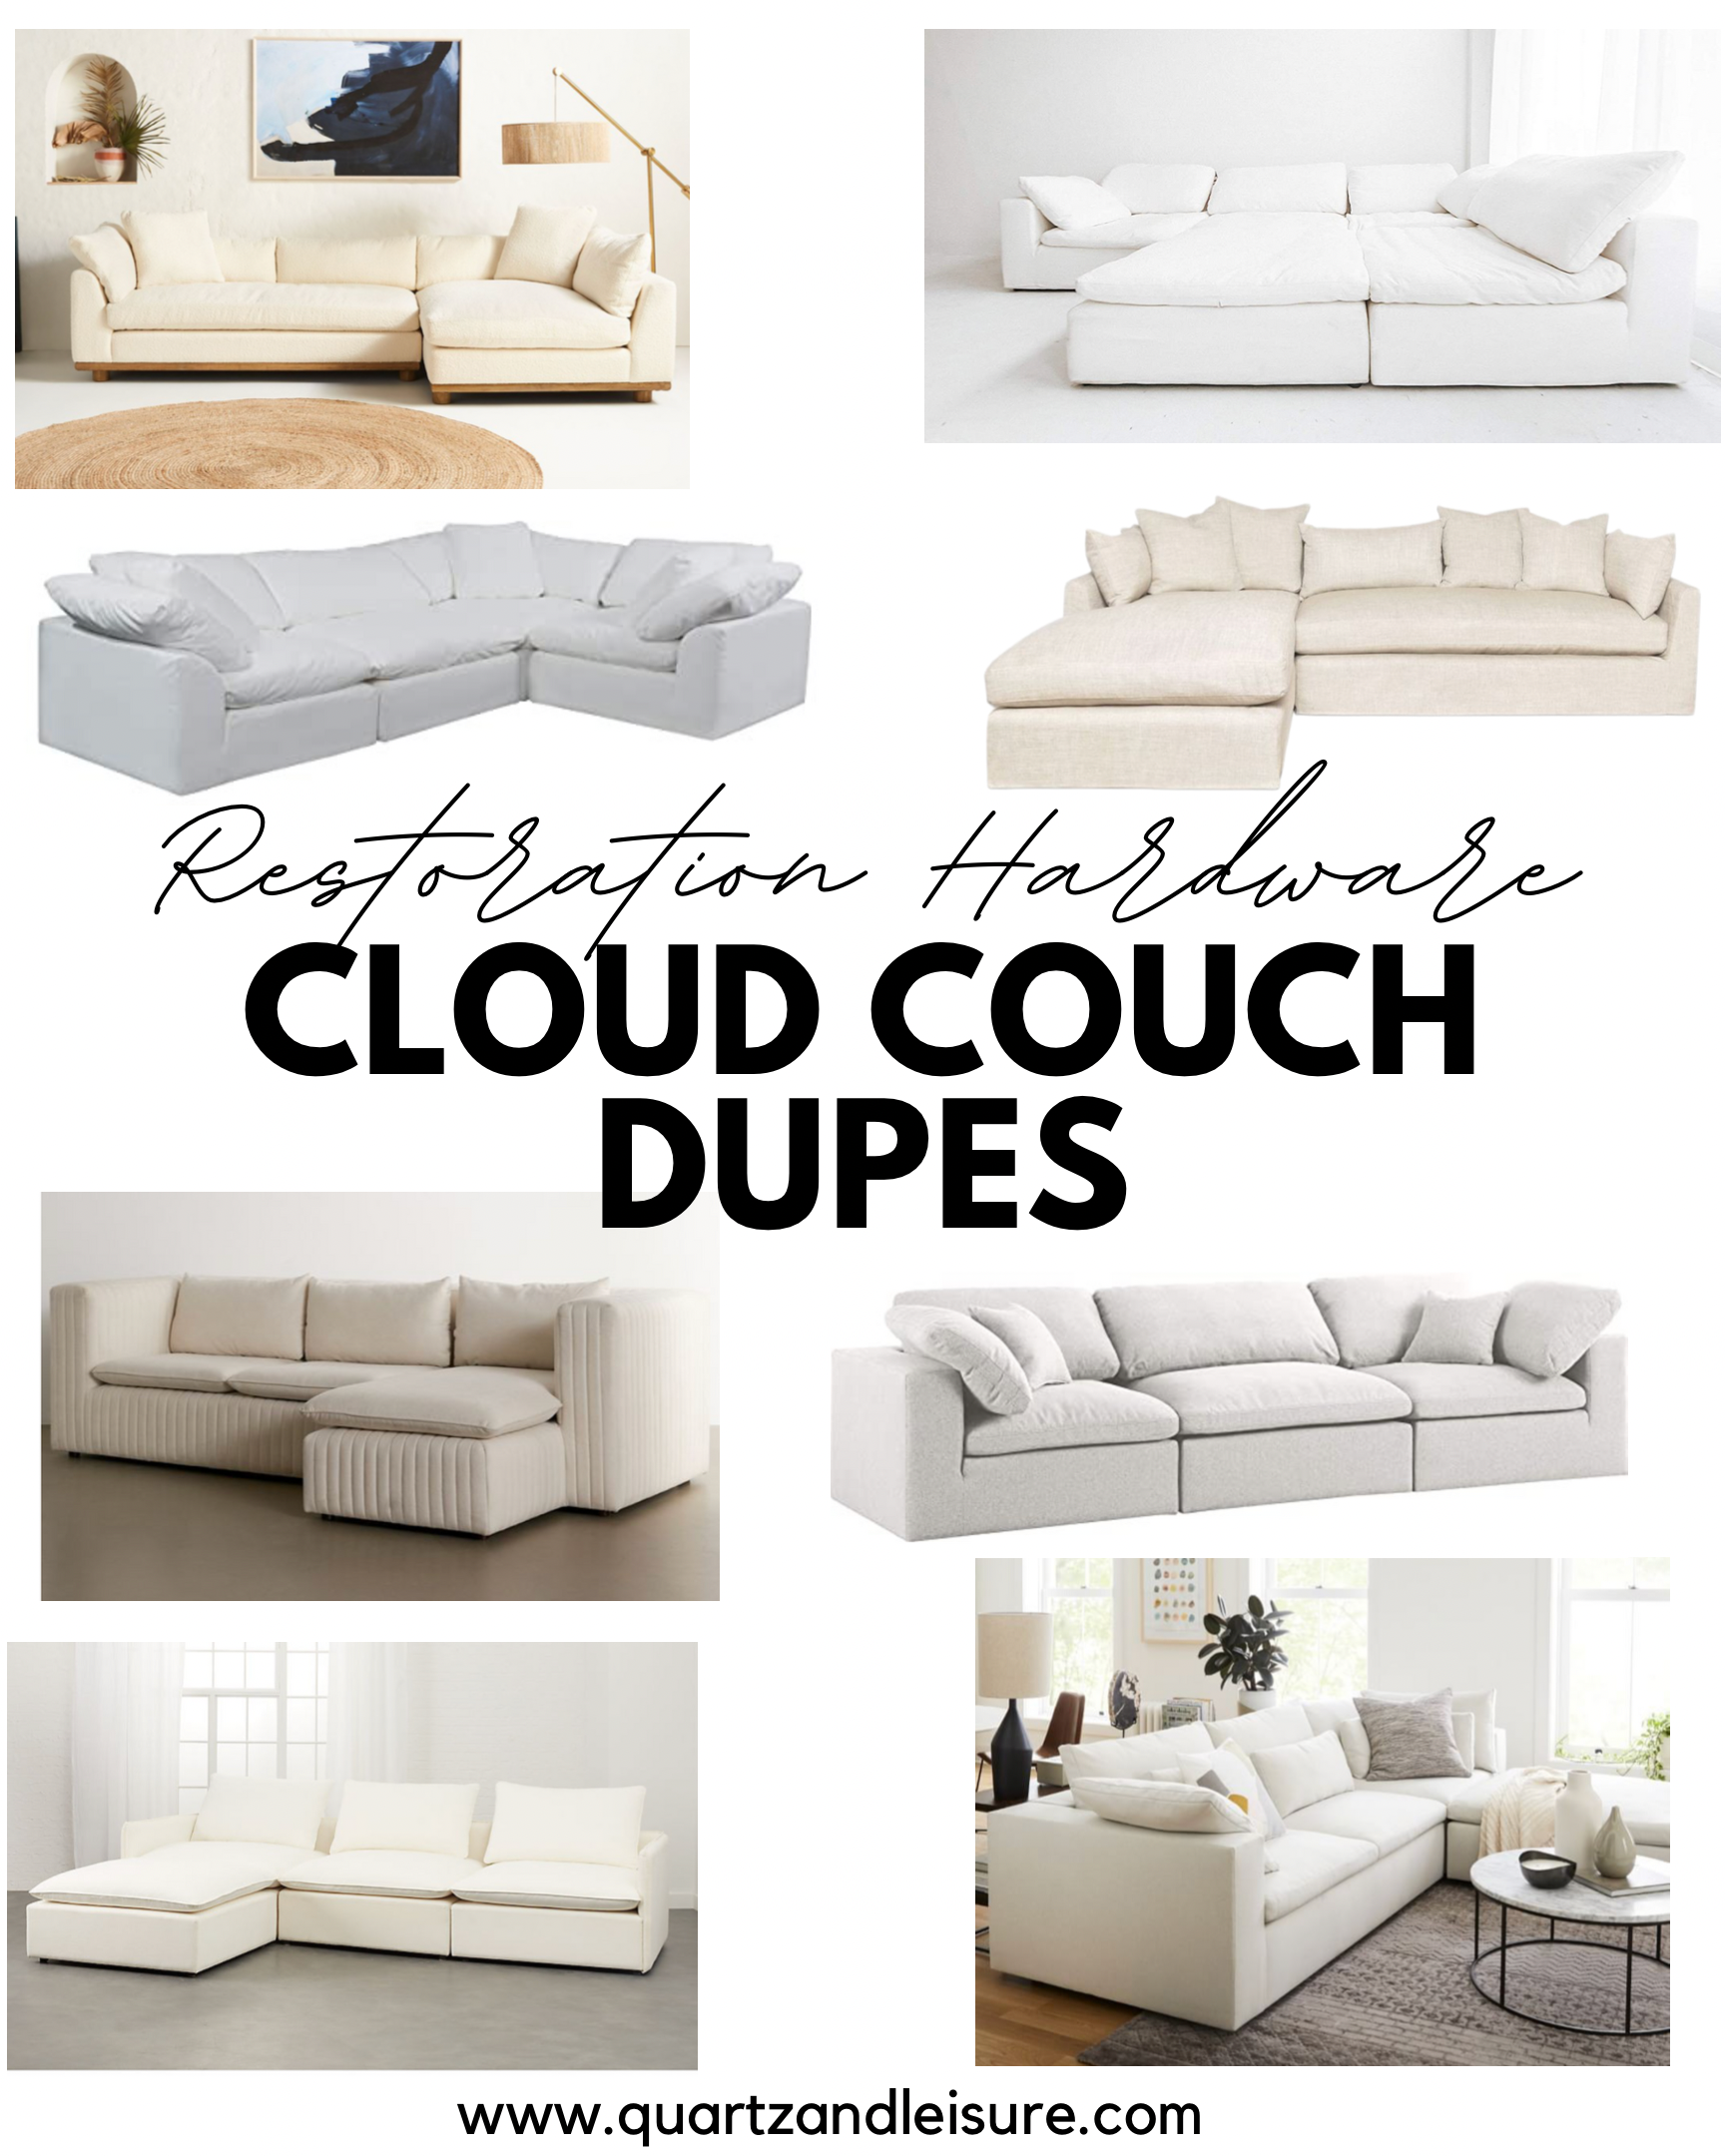 Restoration Hardware Cloud Couch Dupes